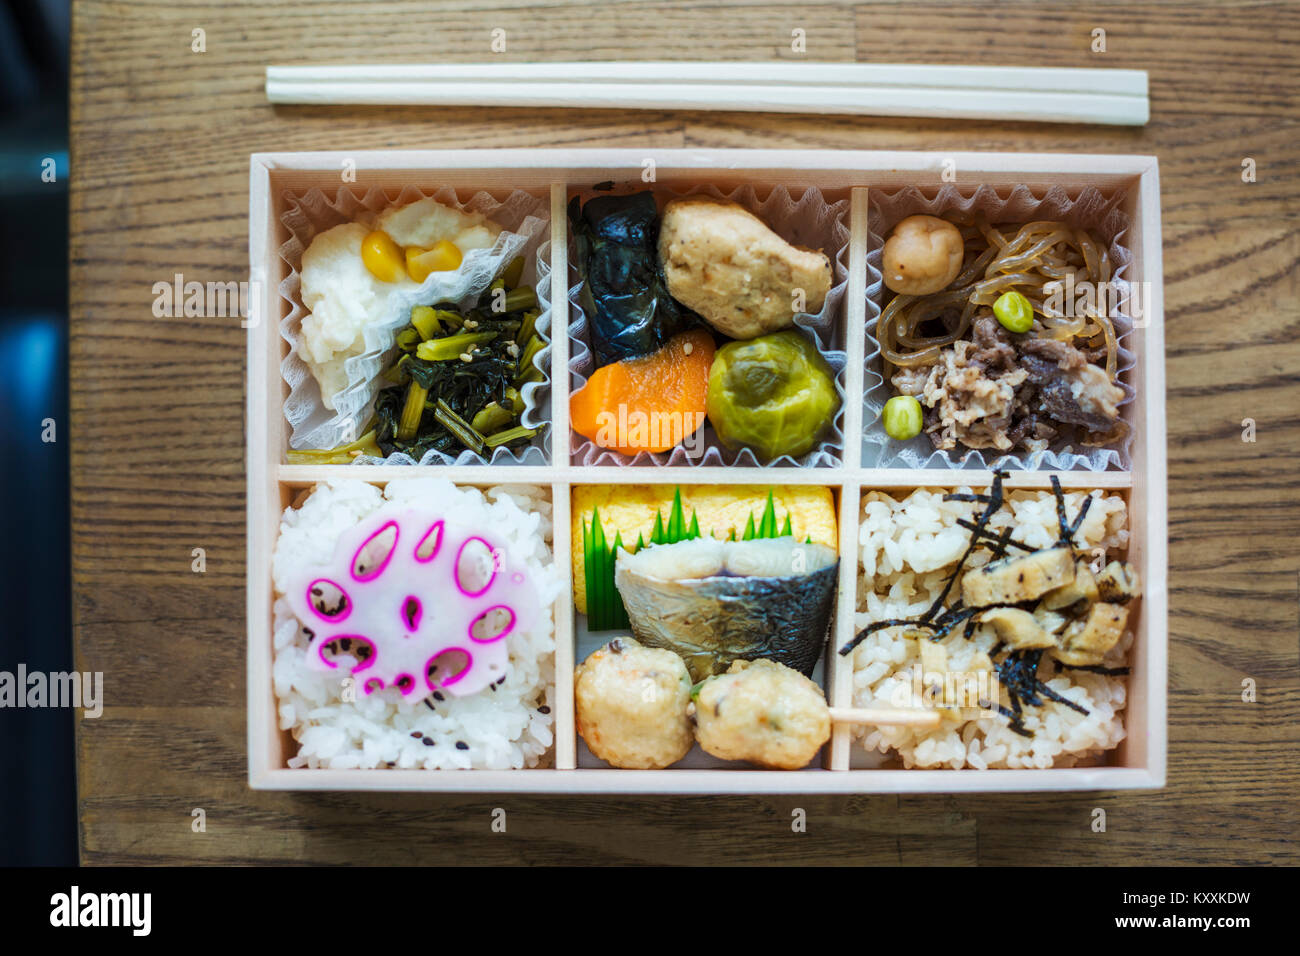 High angle close up of Bento box with traditional Japanese foods and chopsticks on a wooden table. - Stock Image